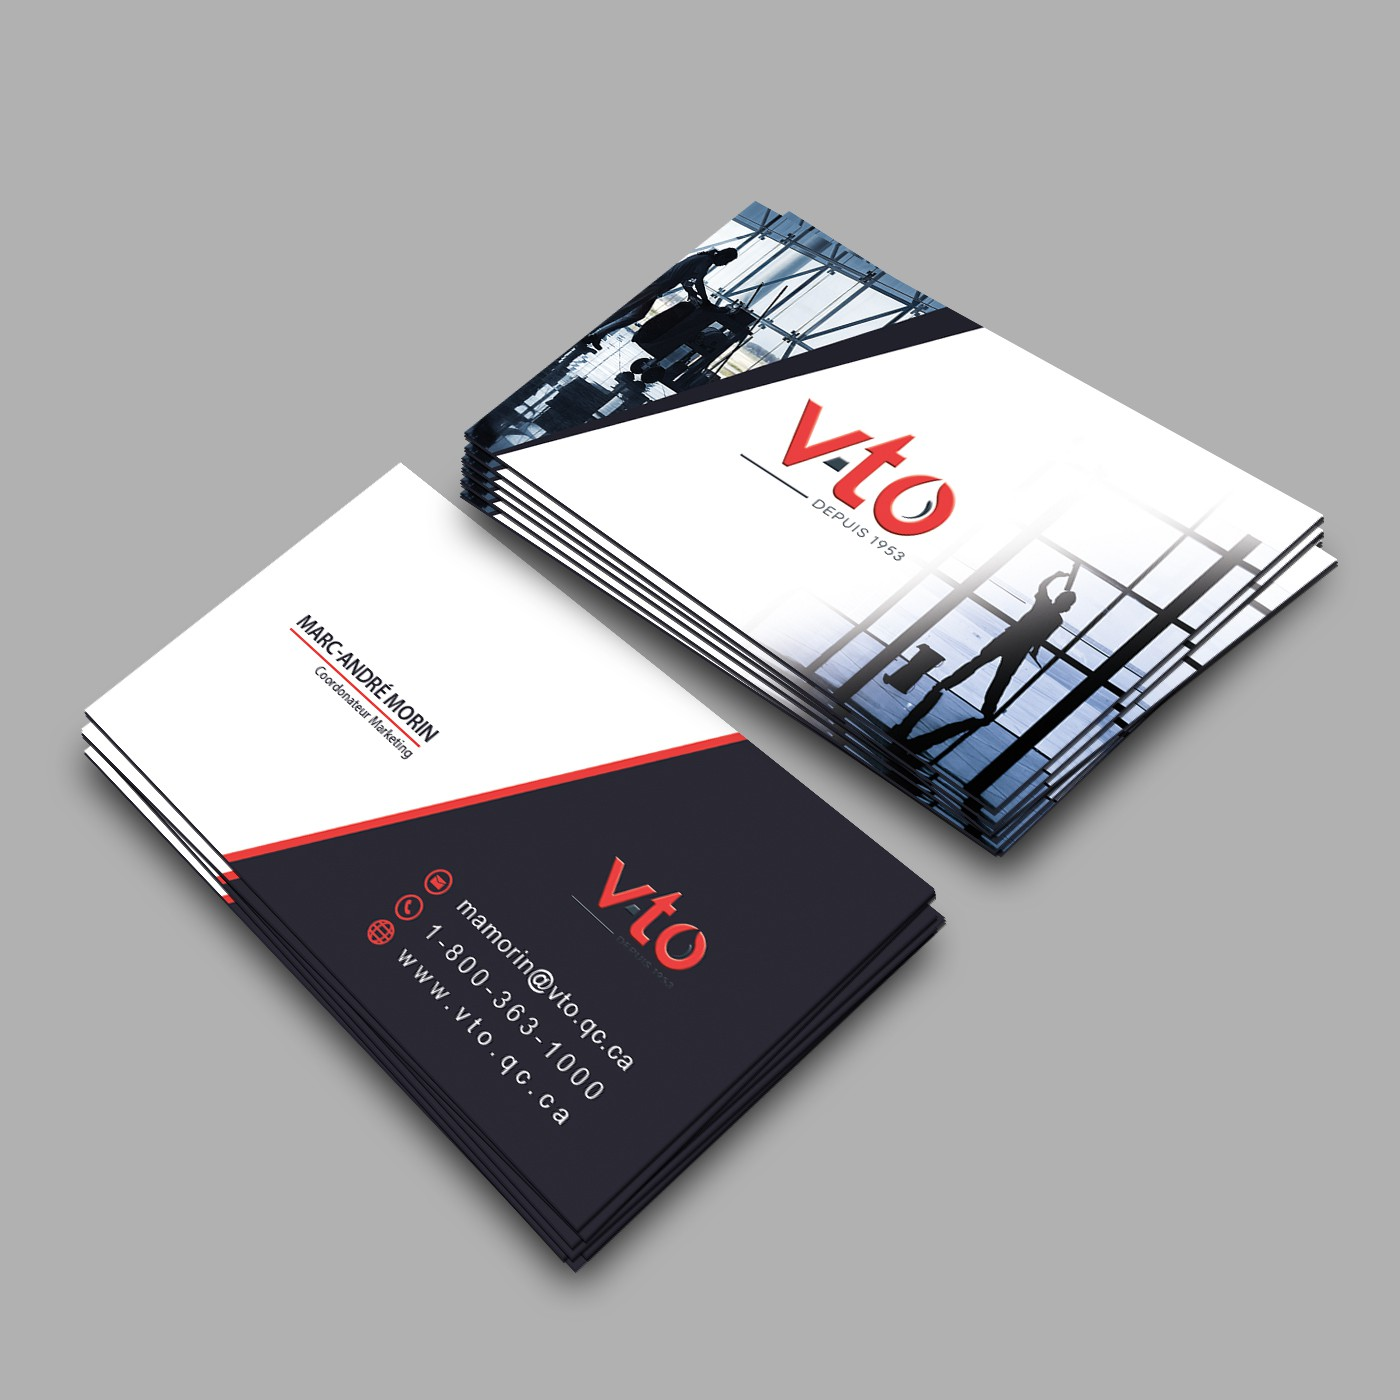 Business card for V-TO